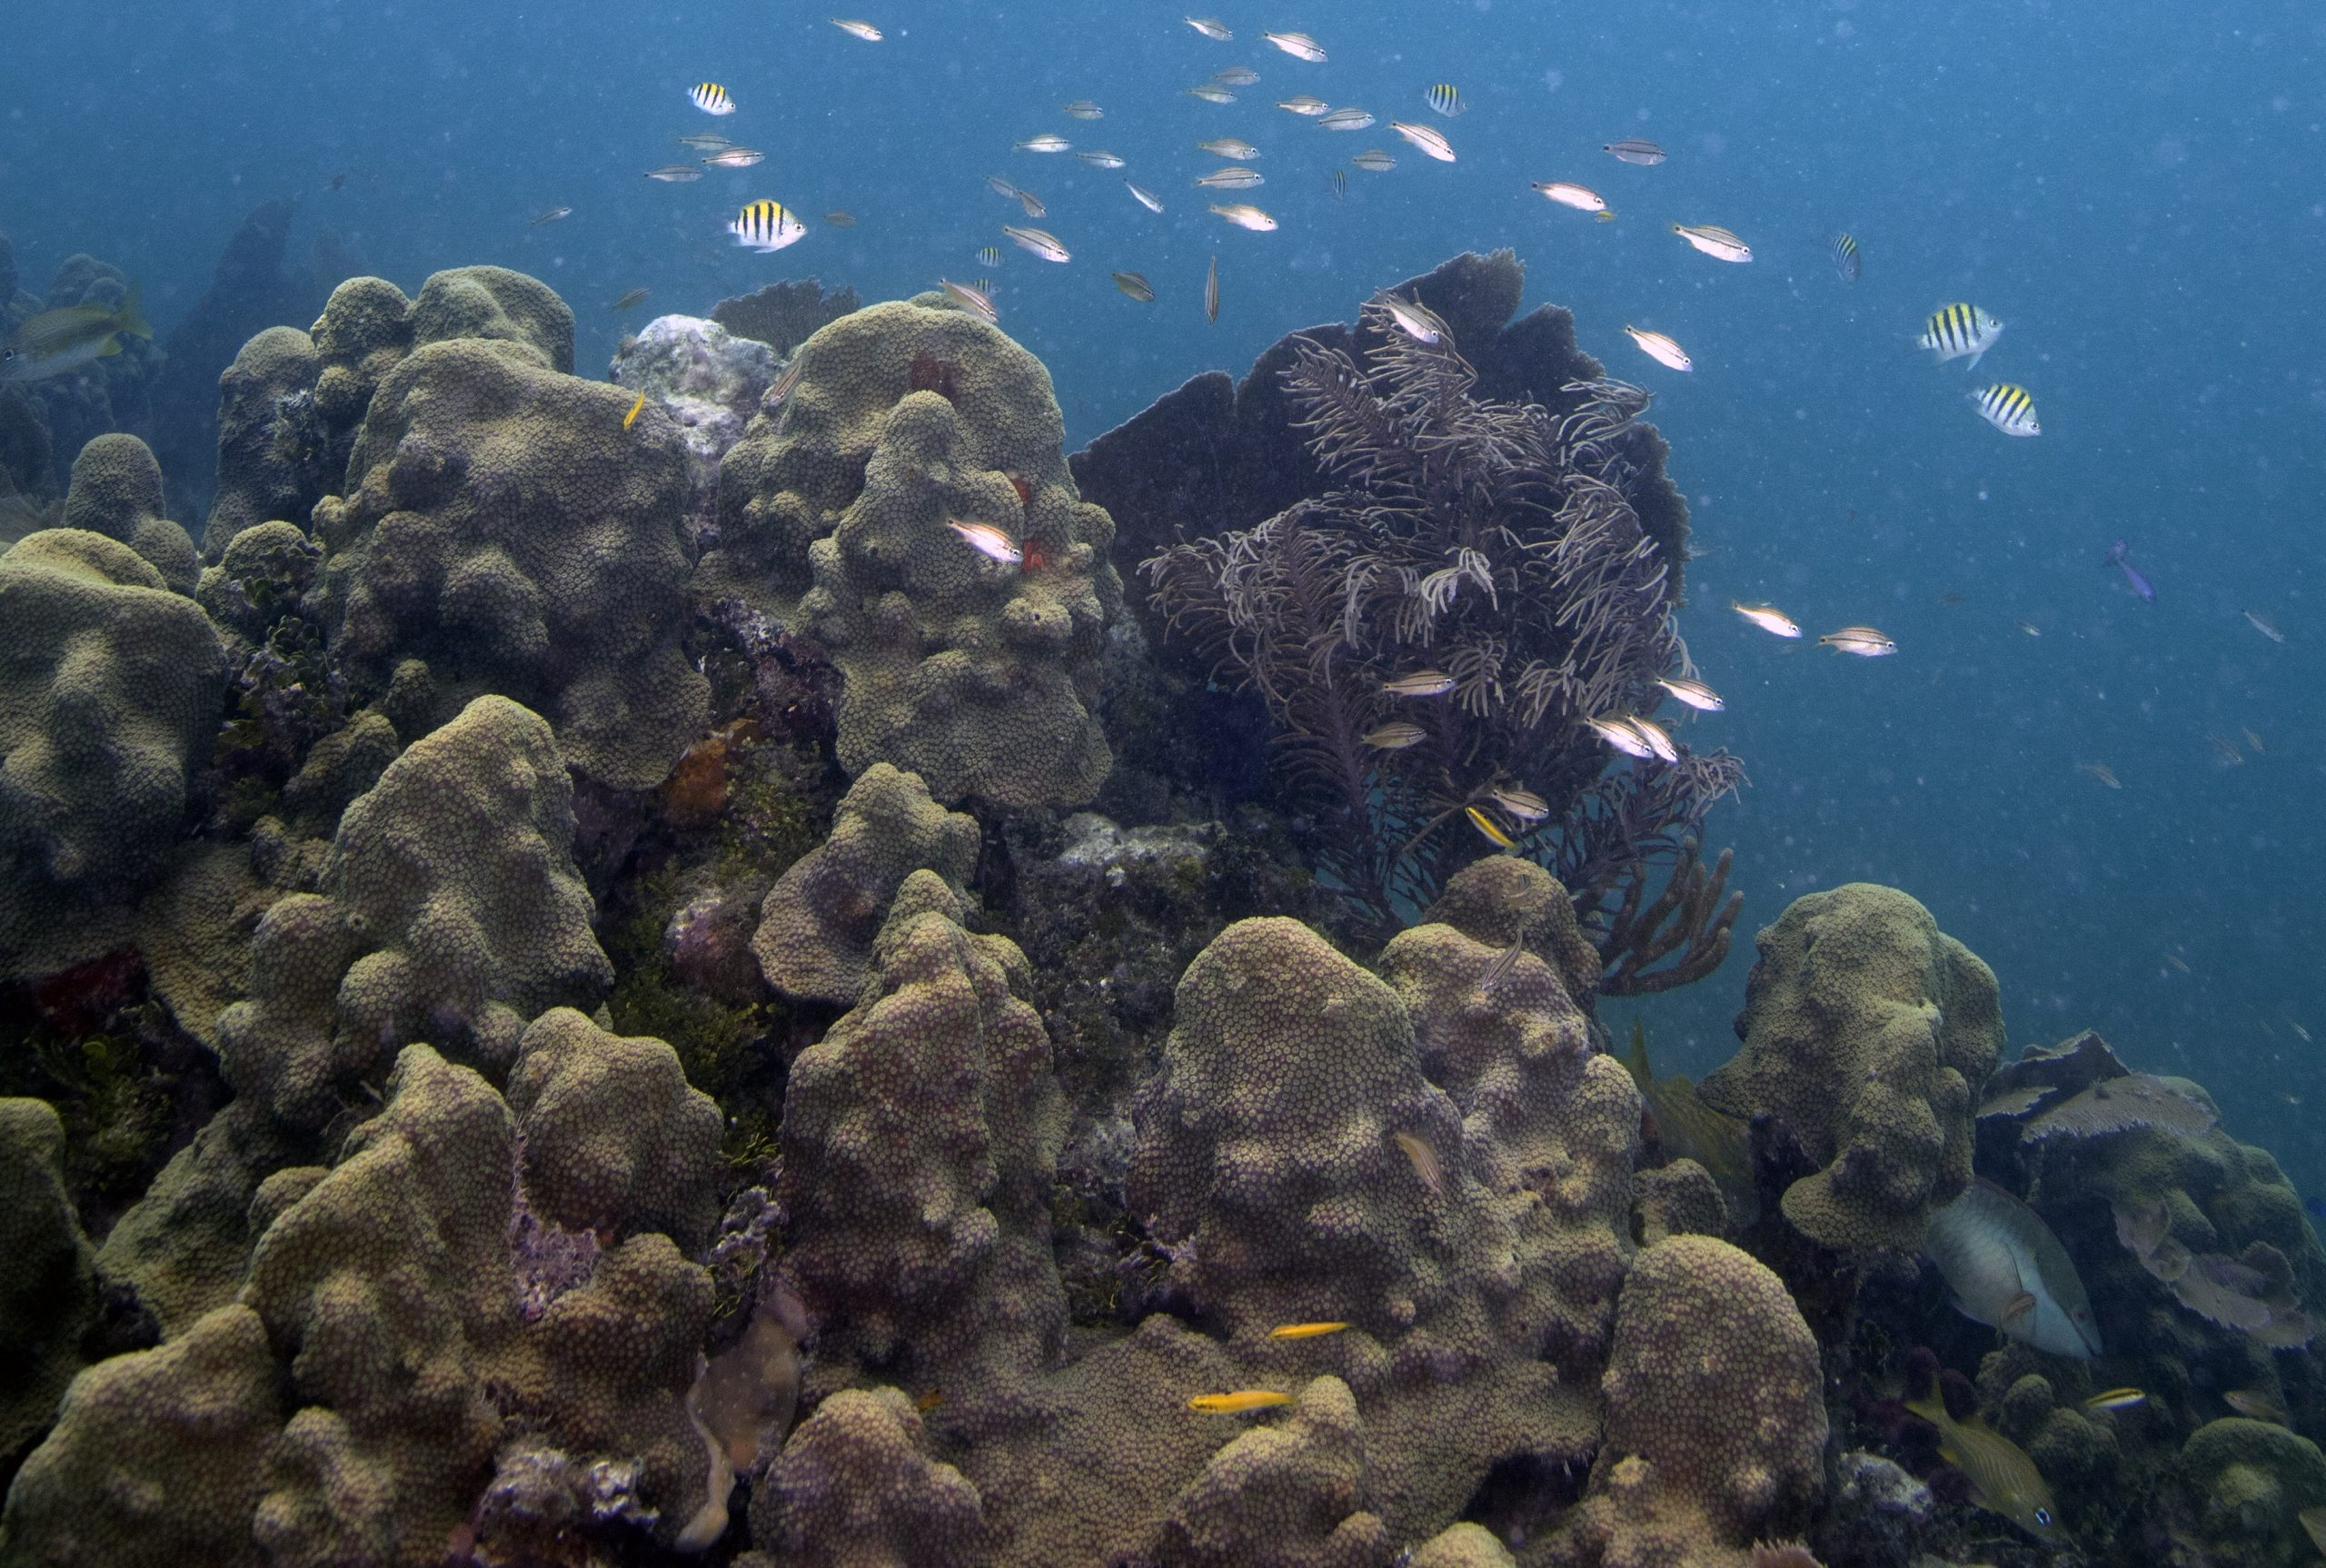 Rebuilding Coral Populations Through Reefs of Opportunity